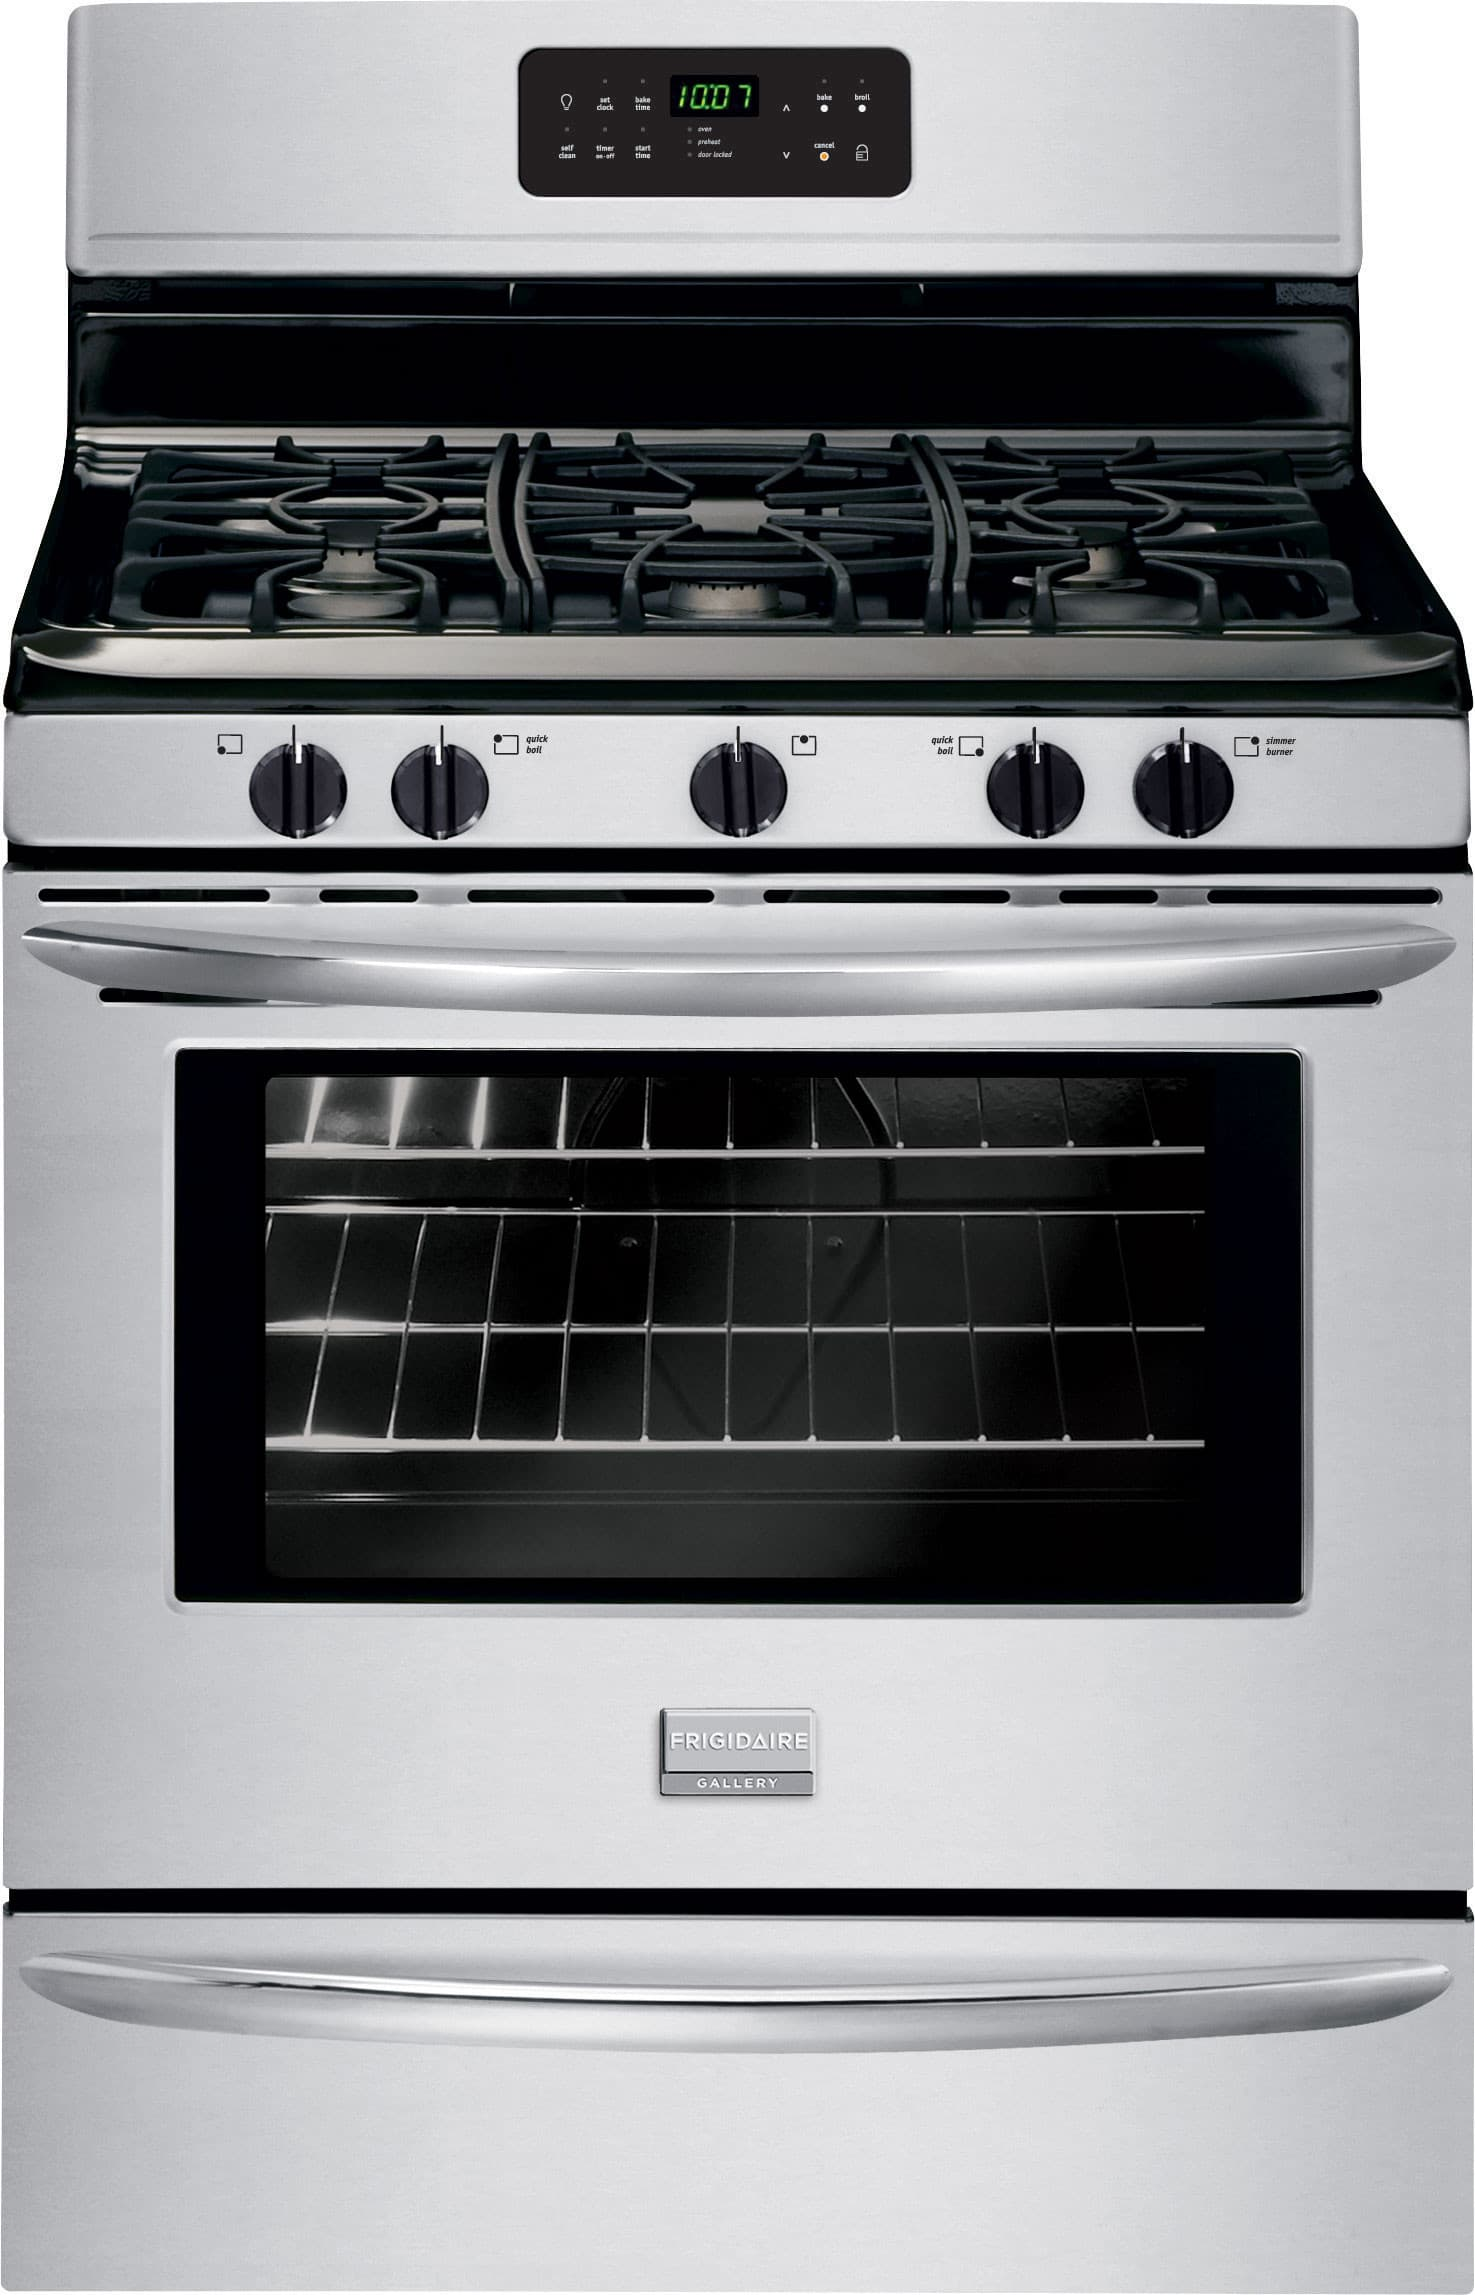 Frigidaire Fggf3030pf 30 Inch Freestanding Gas Range With